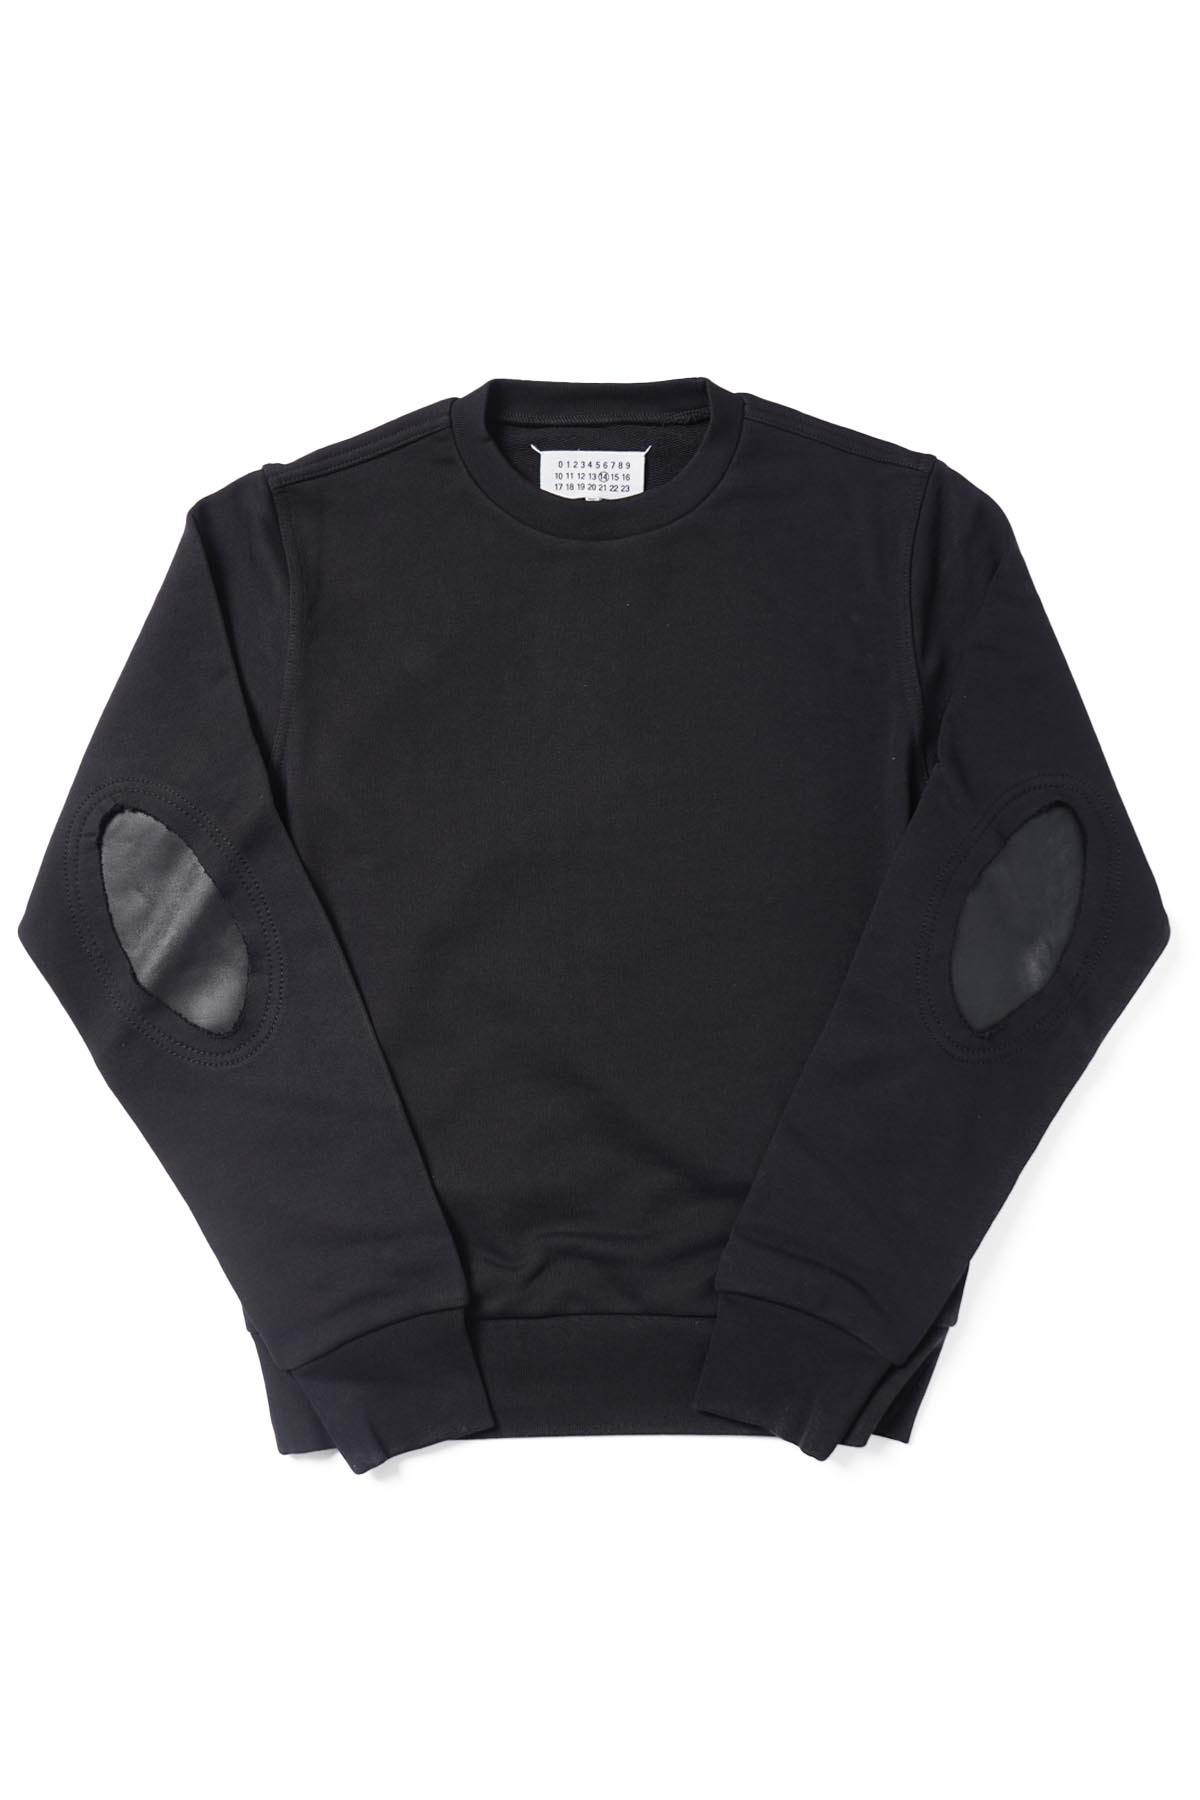 Elbow Patch Sweat Black[2021SS]